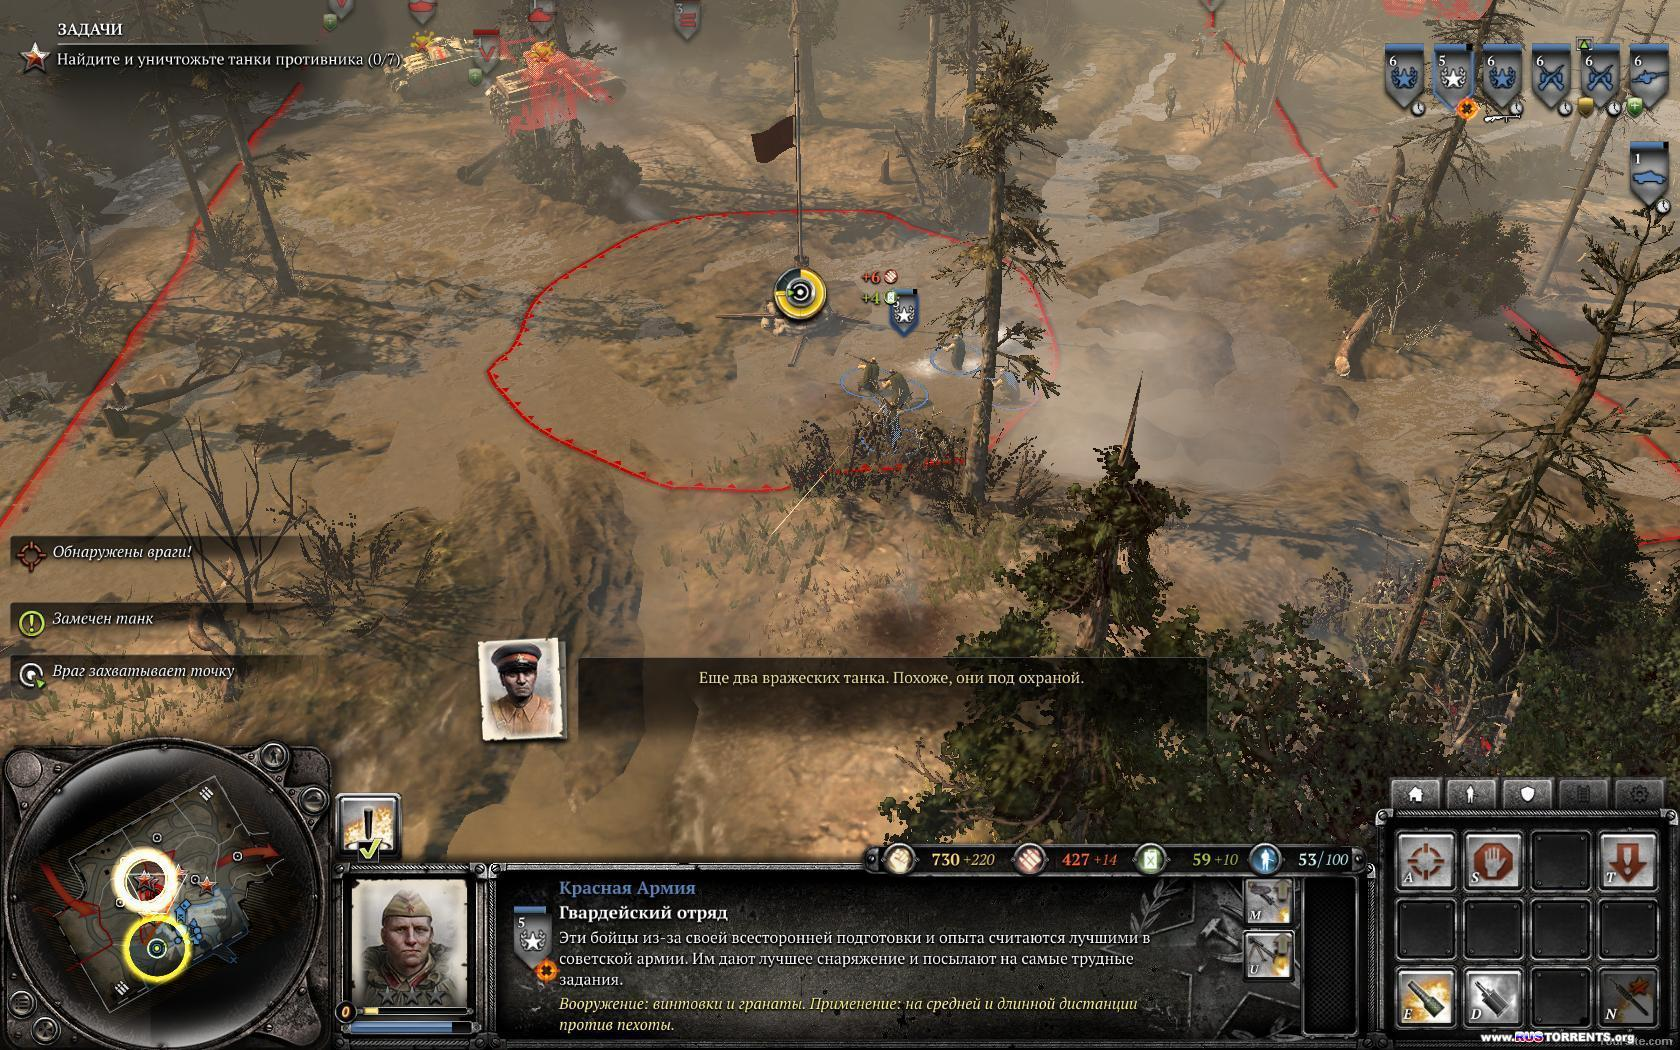 Company of Heroes 2: Digital Collector's Edition [v3.0.0.14752 + DLC's] | PC | Steam-Rip